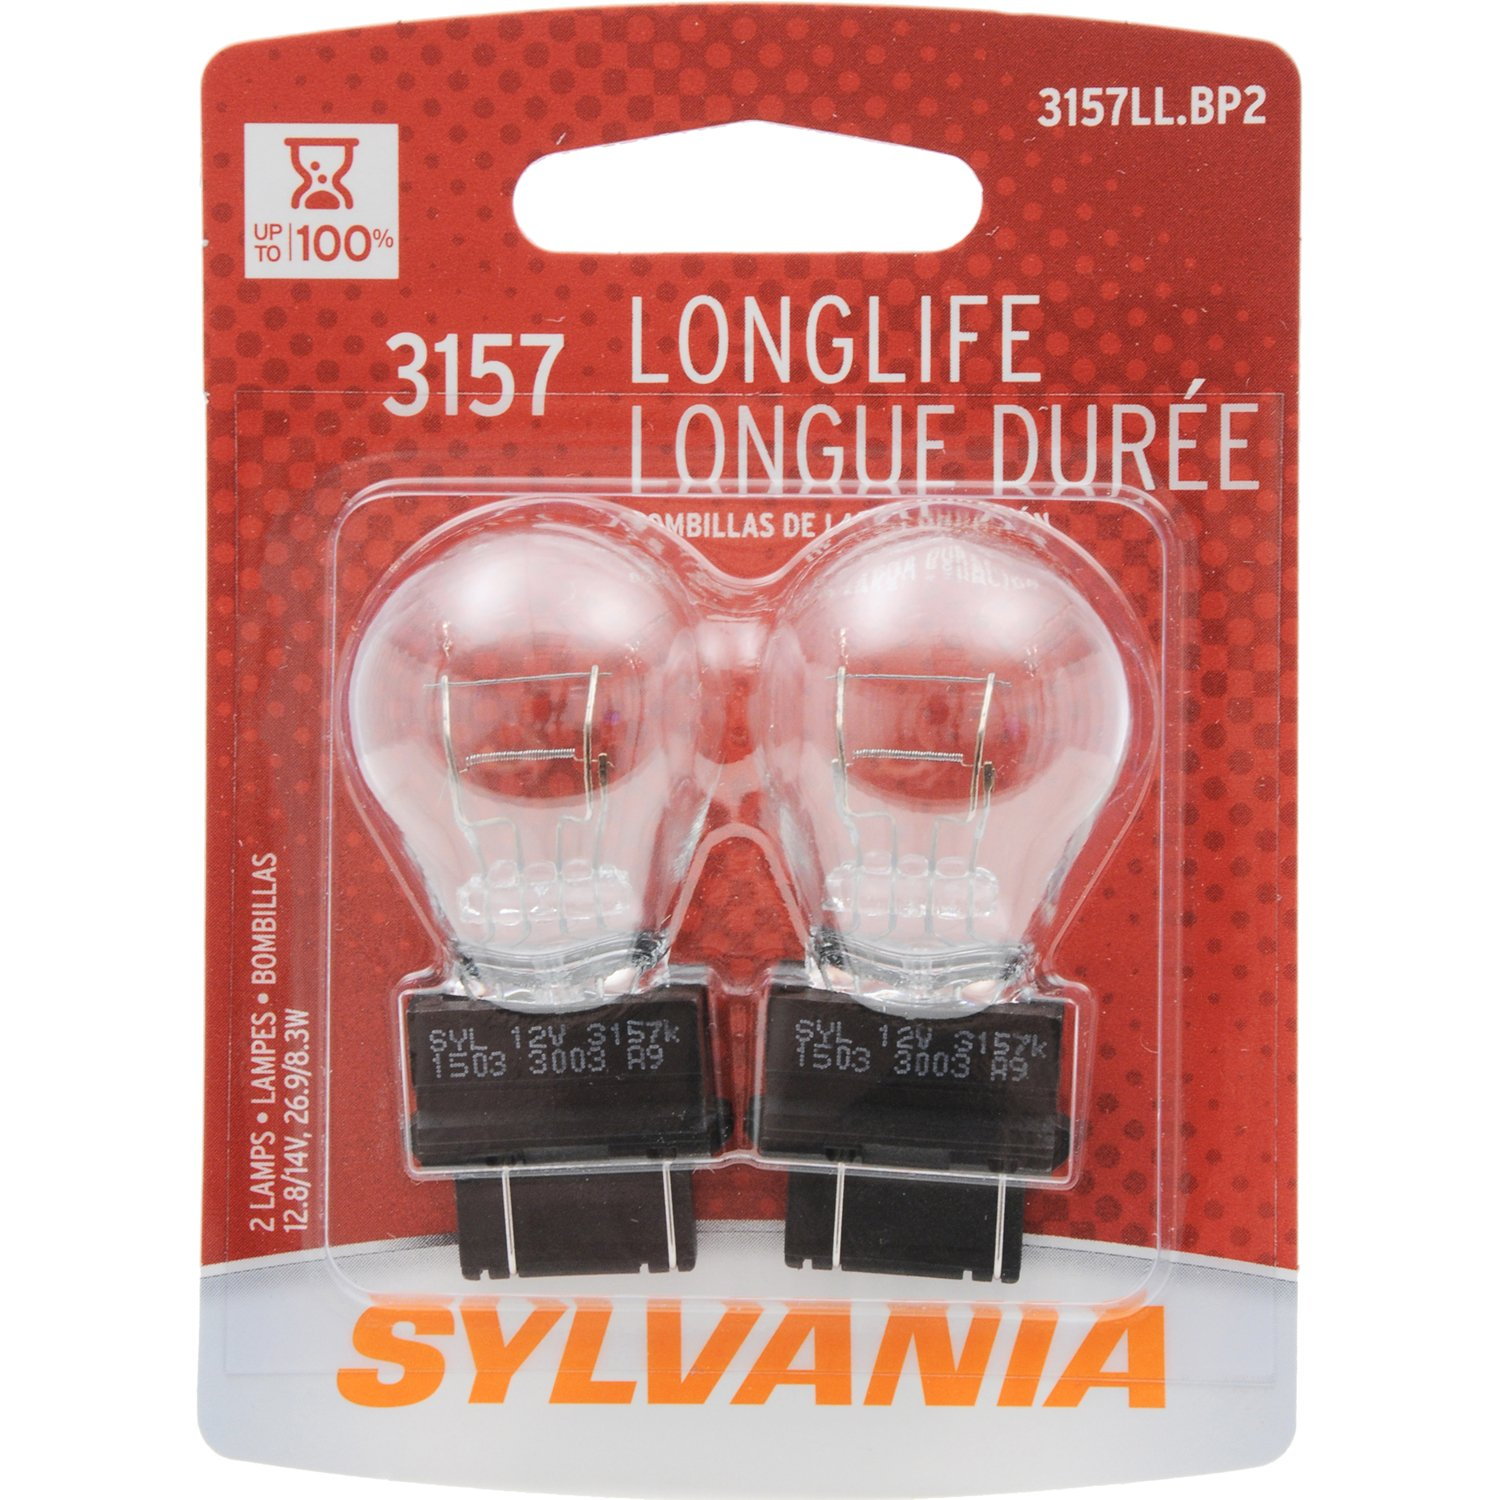 amazoncom sylvania long life miniature bulb contains 2 bulbs automotive - Sylvania Light Bulbs